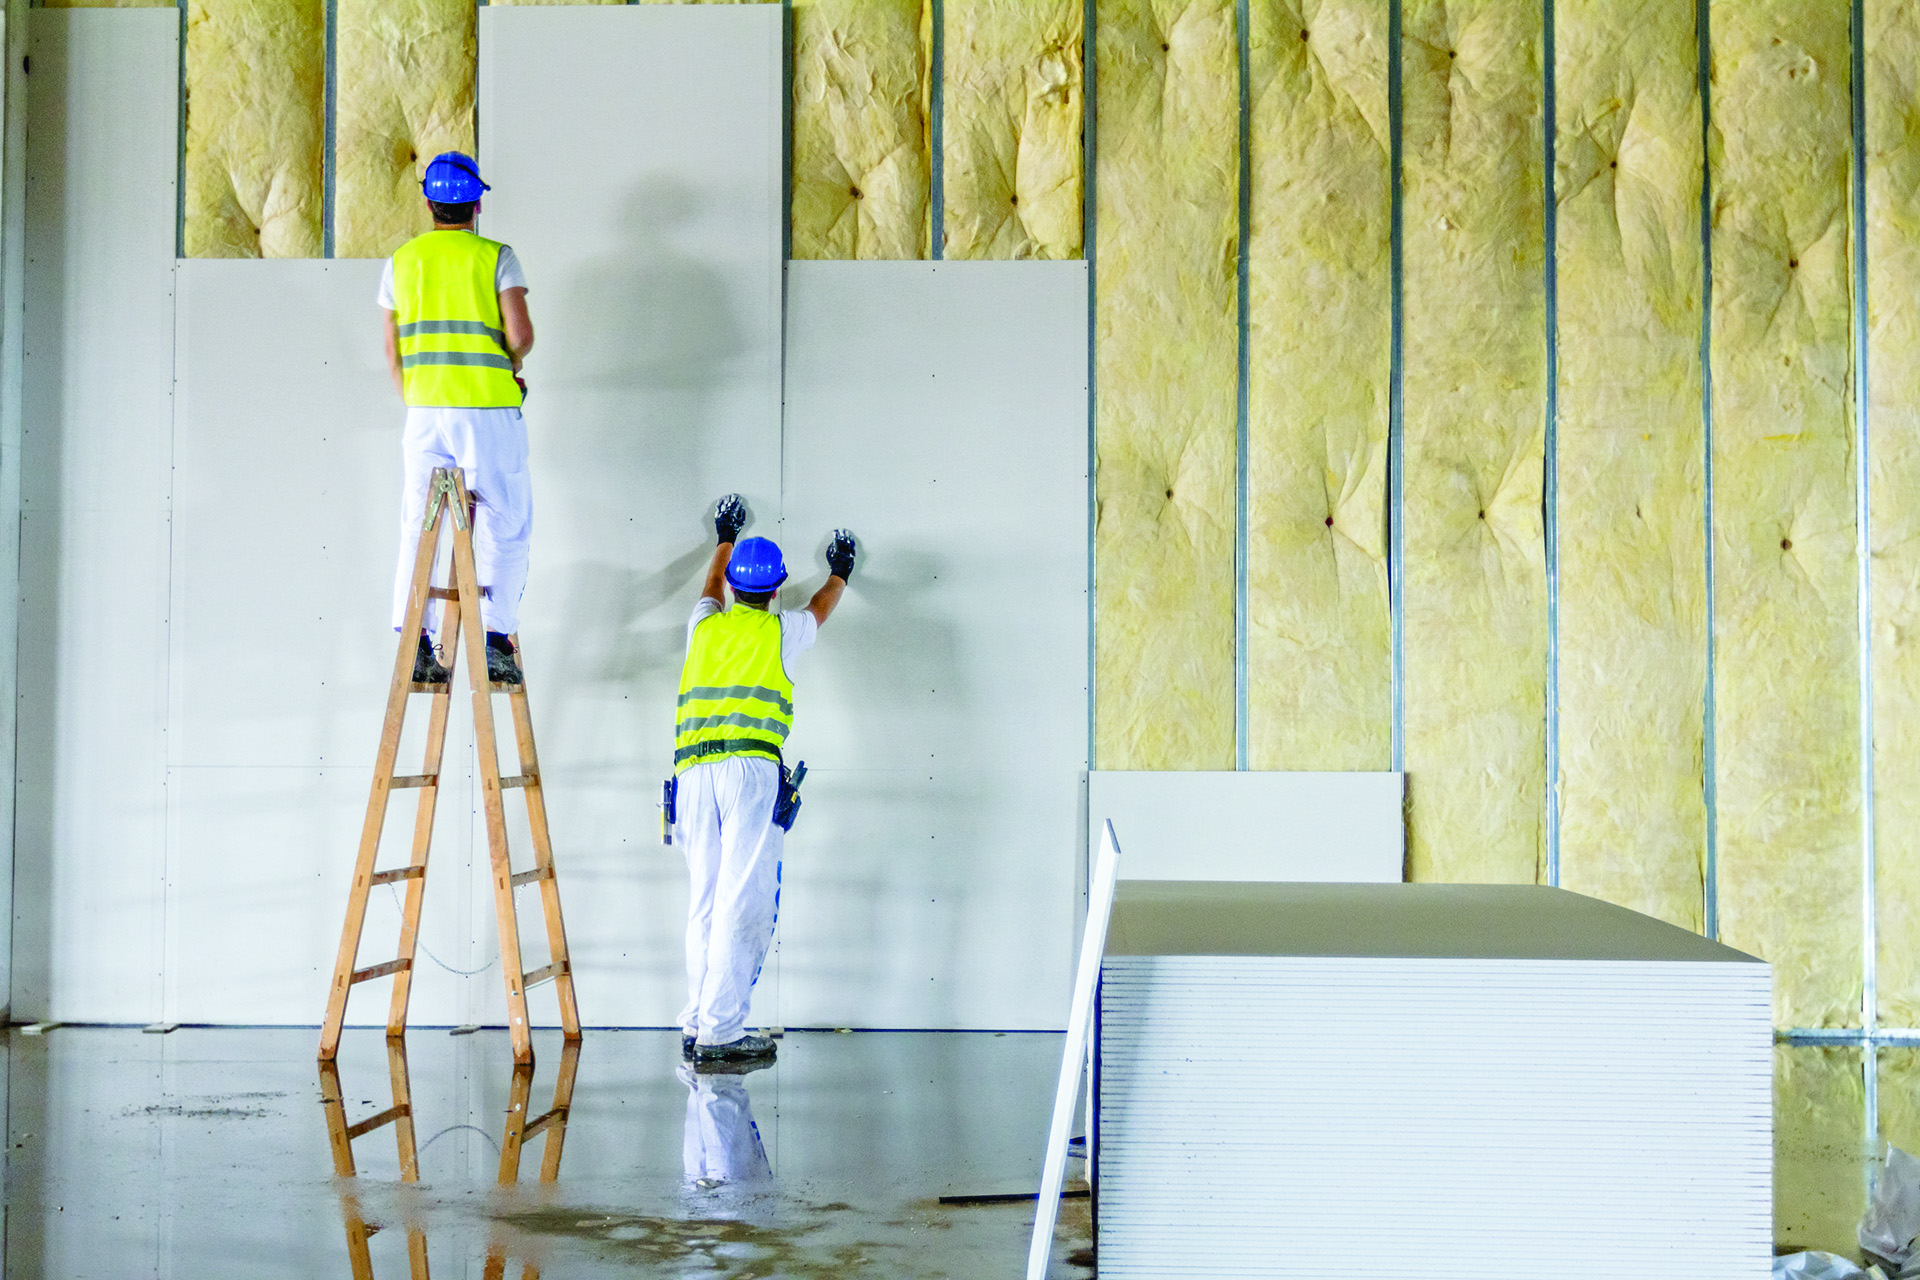 https://performance-drywallinc.com/wp-content/uploads/2020/11/insulation.jpg